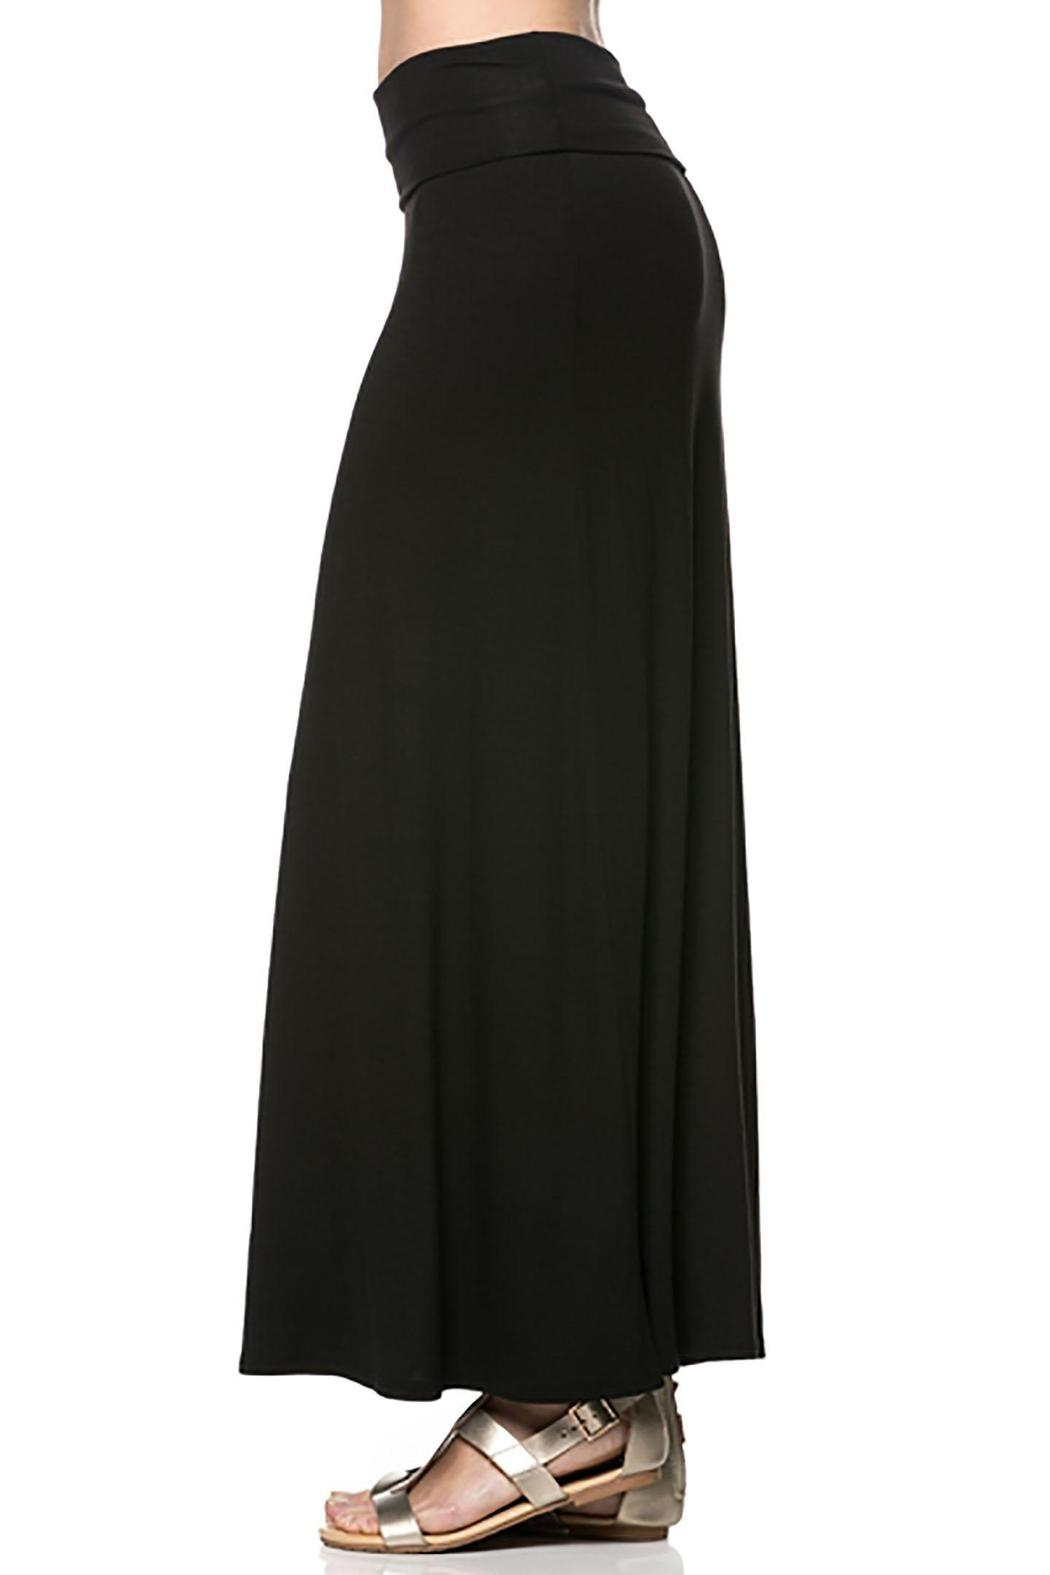 Azules Black Maxi Skirt - Side Cropped Image